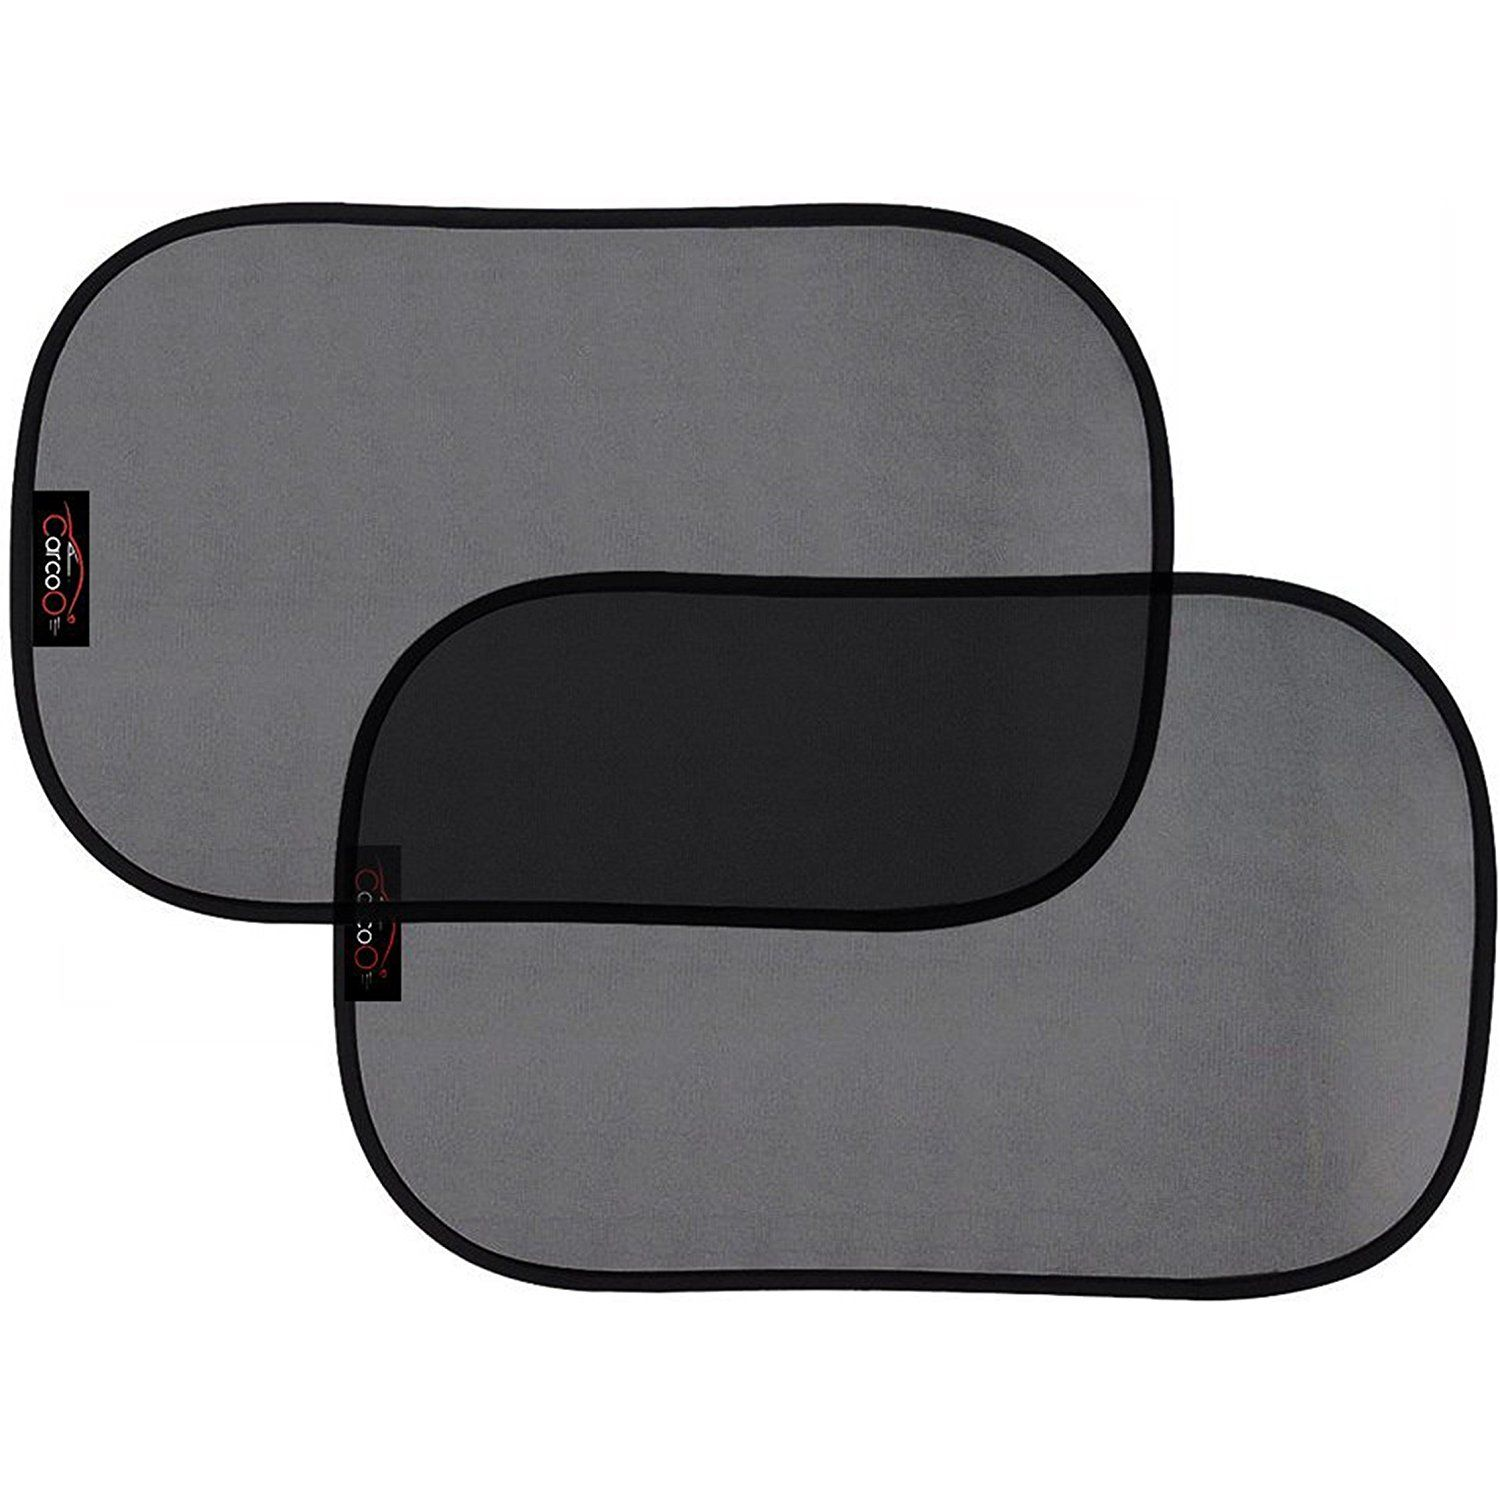 Car window coverings  car window shade by carcoo   pack